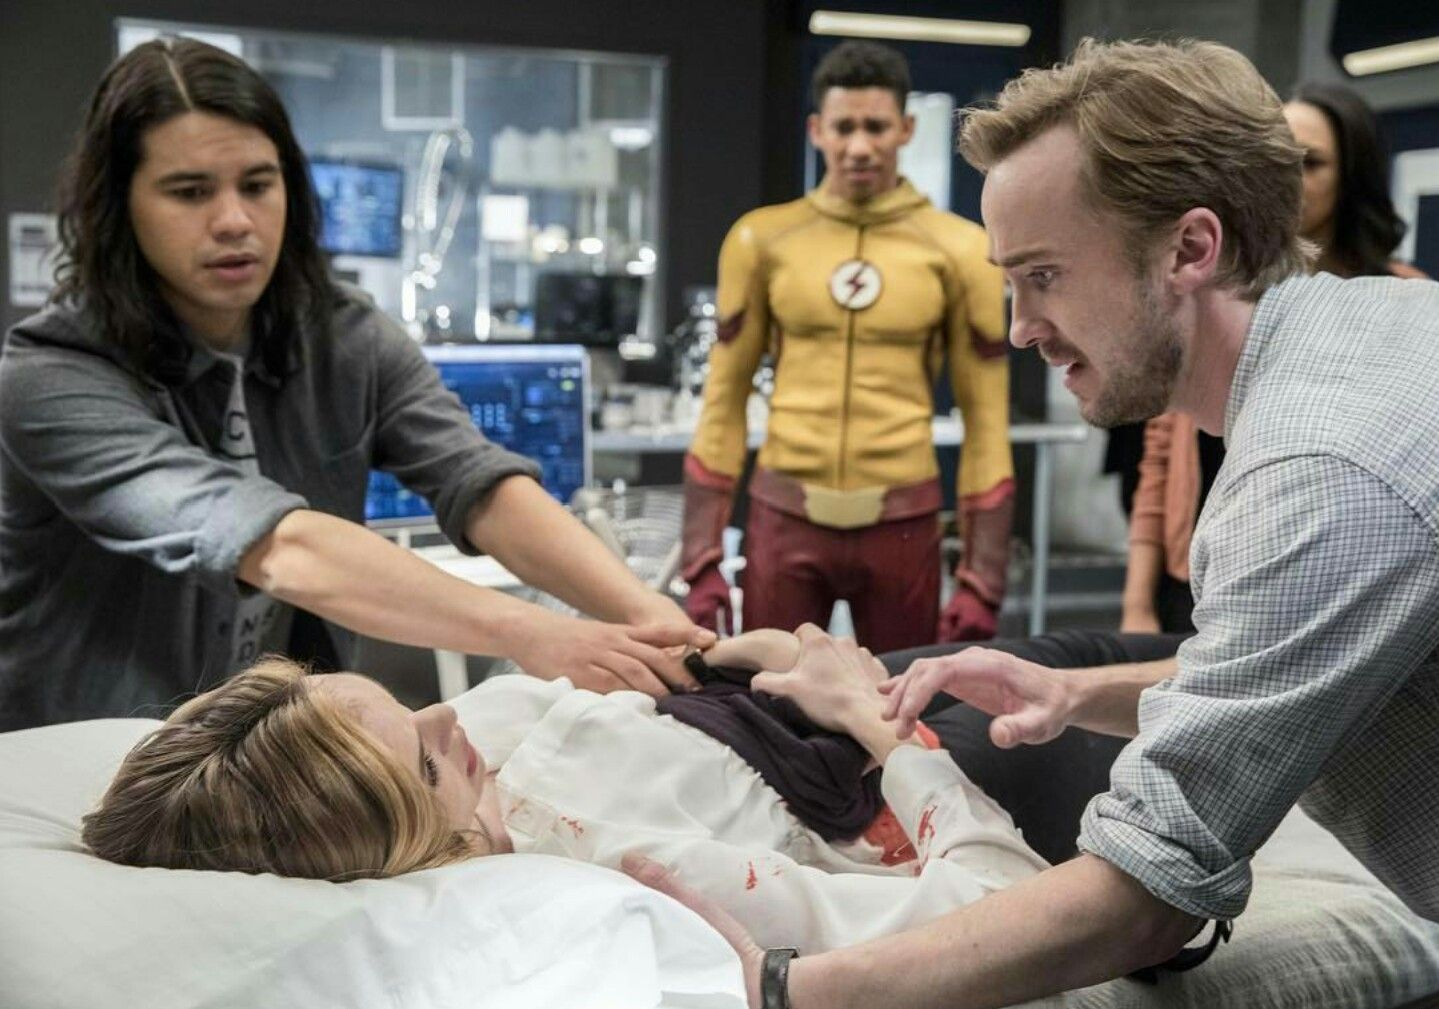 Pin by Daleen B. on The Flash Actors | The cw, The flash